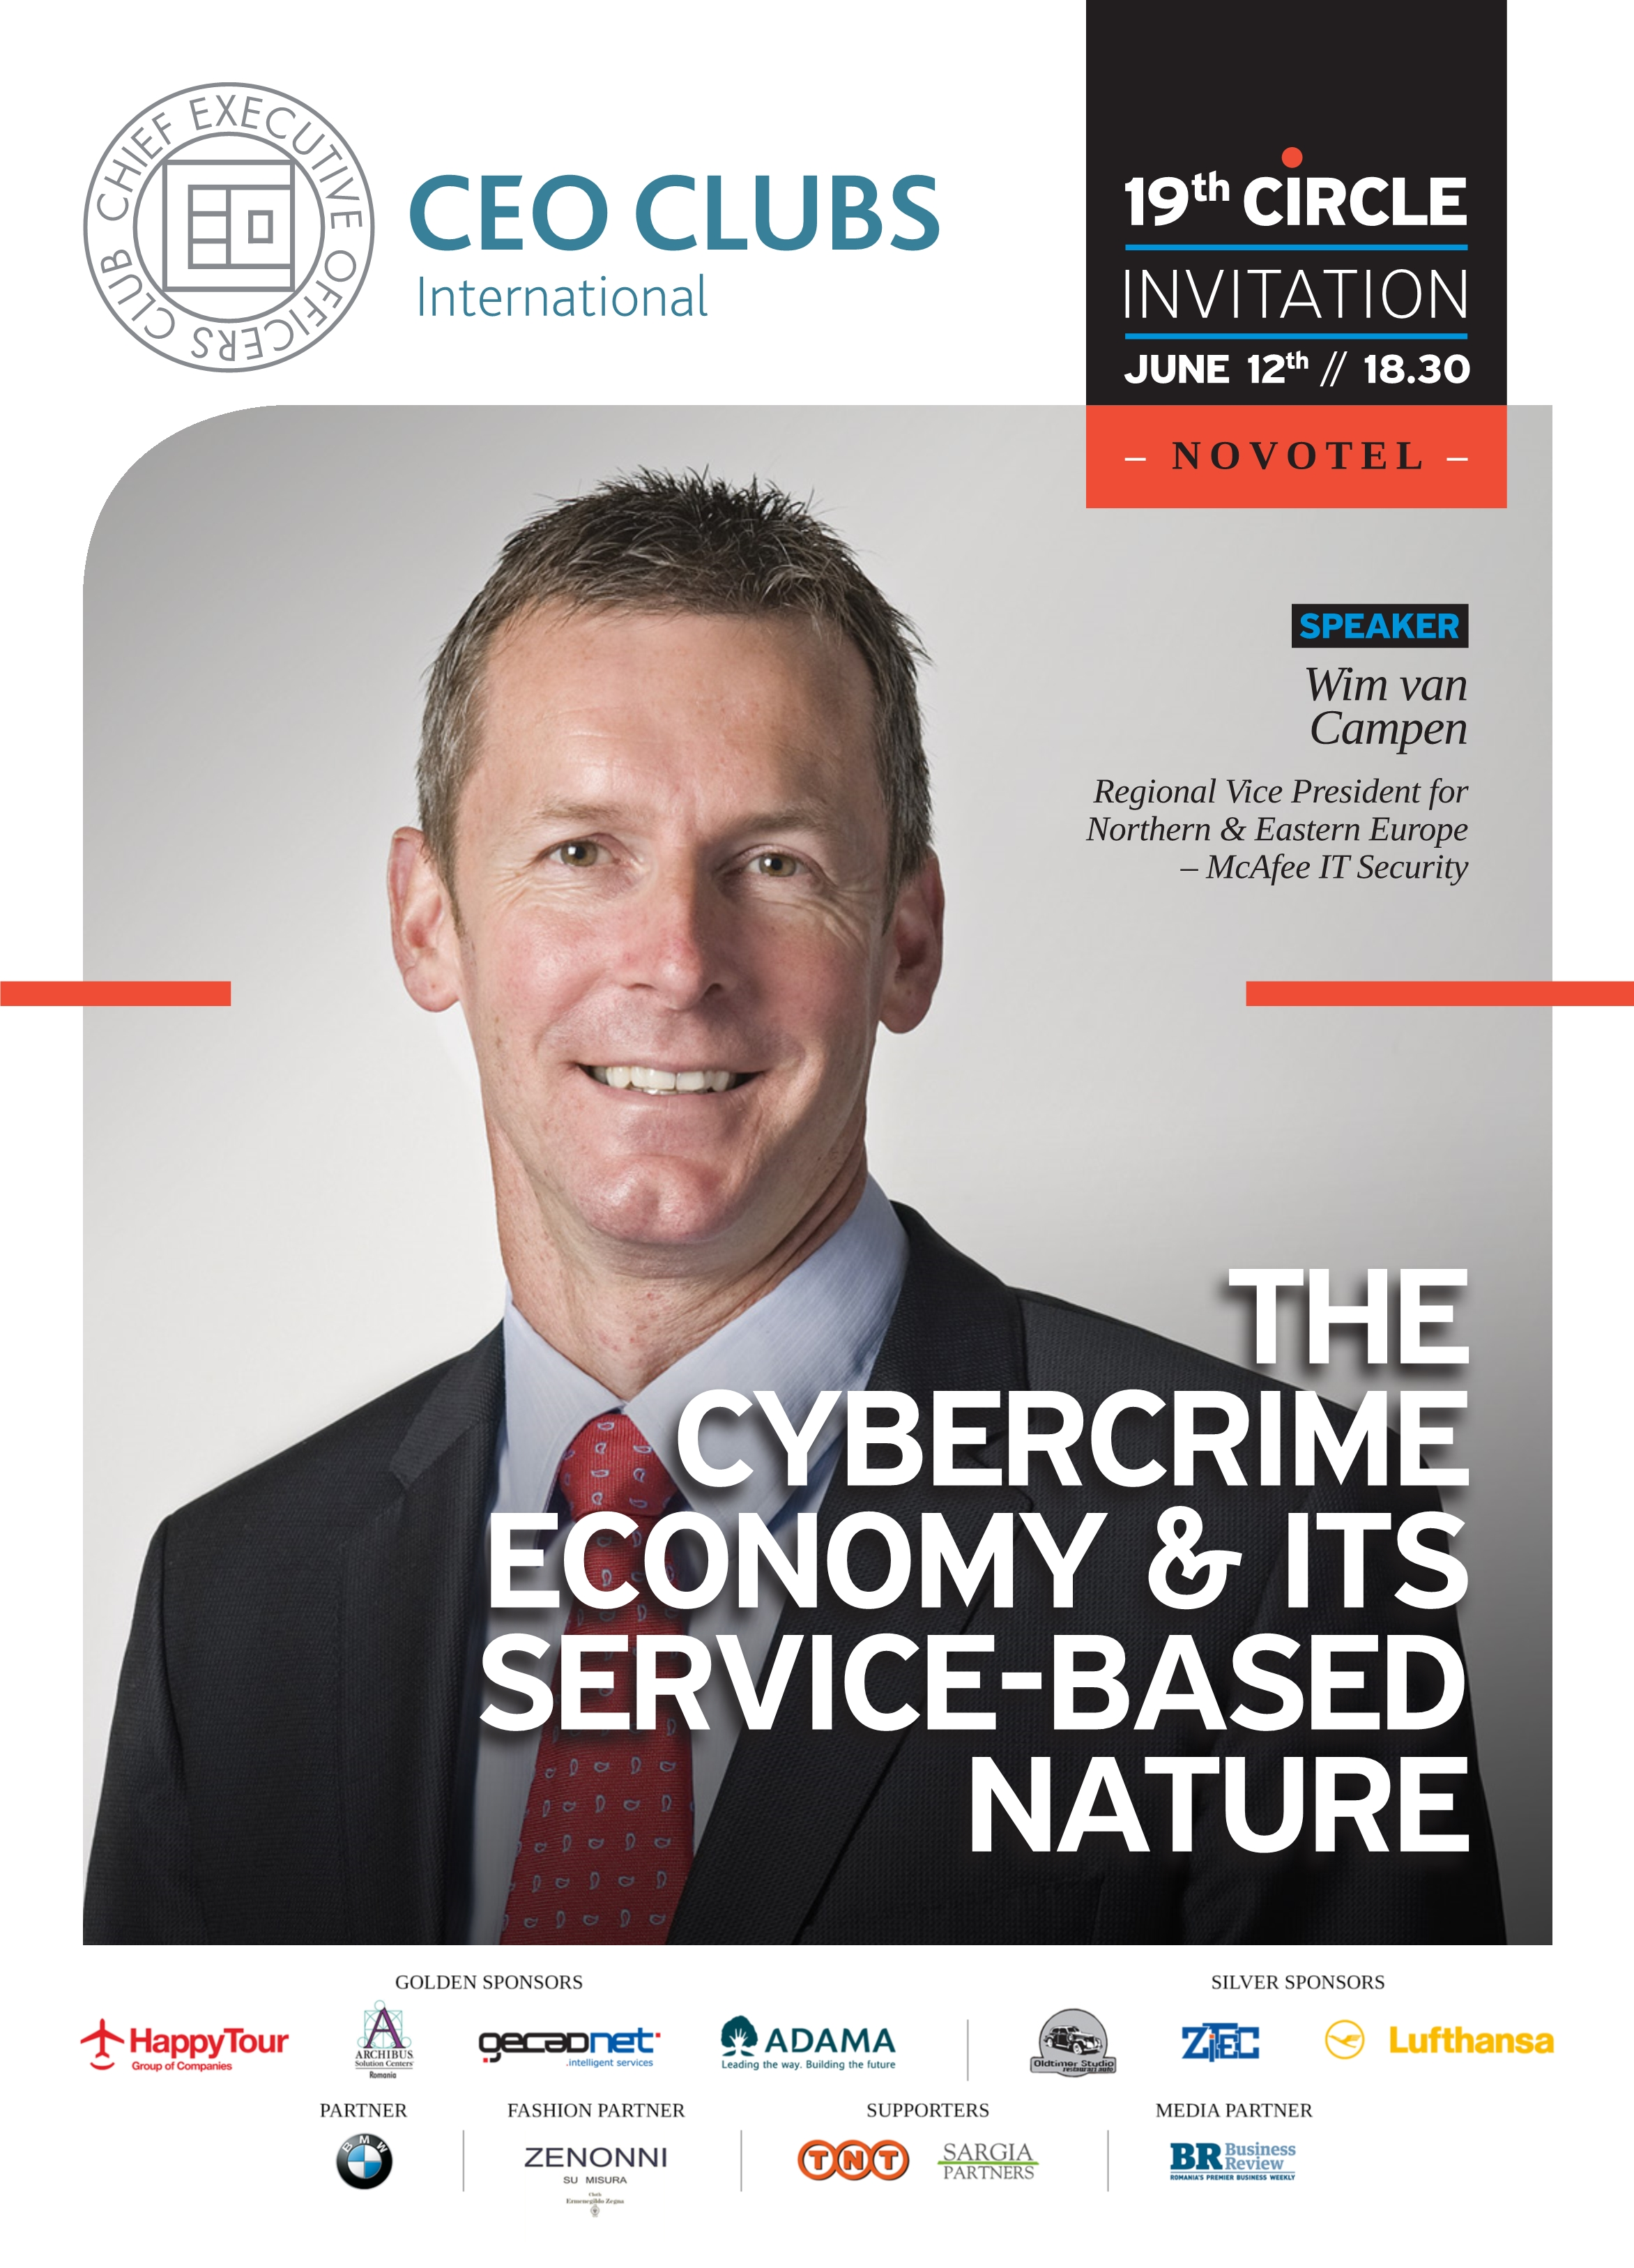 19th Circle: The Cybercrime Economy & Its Service-Based Nature